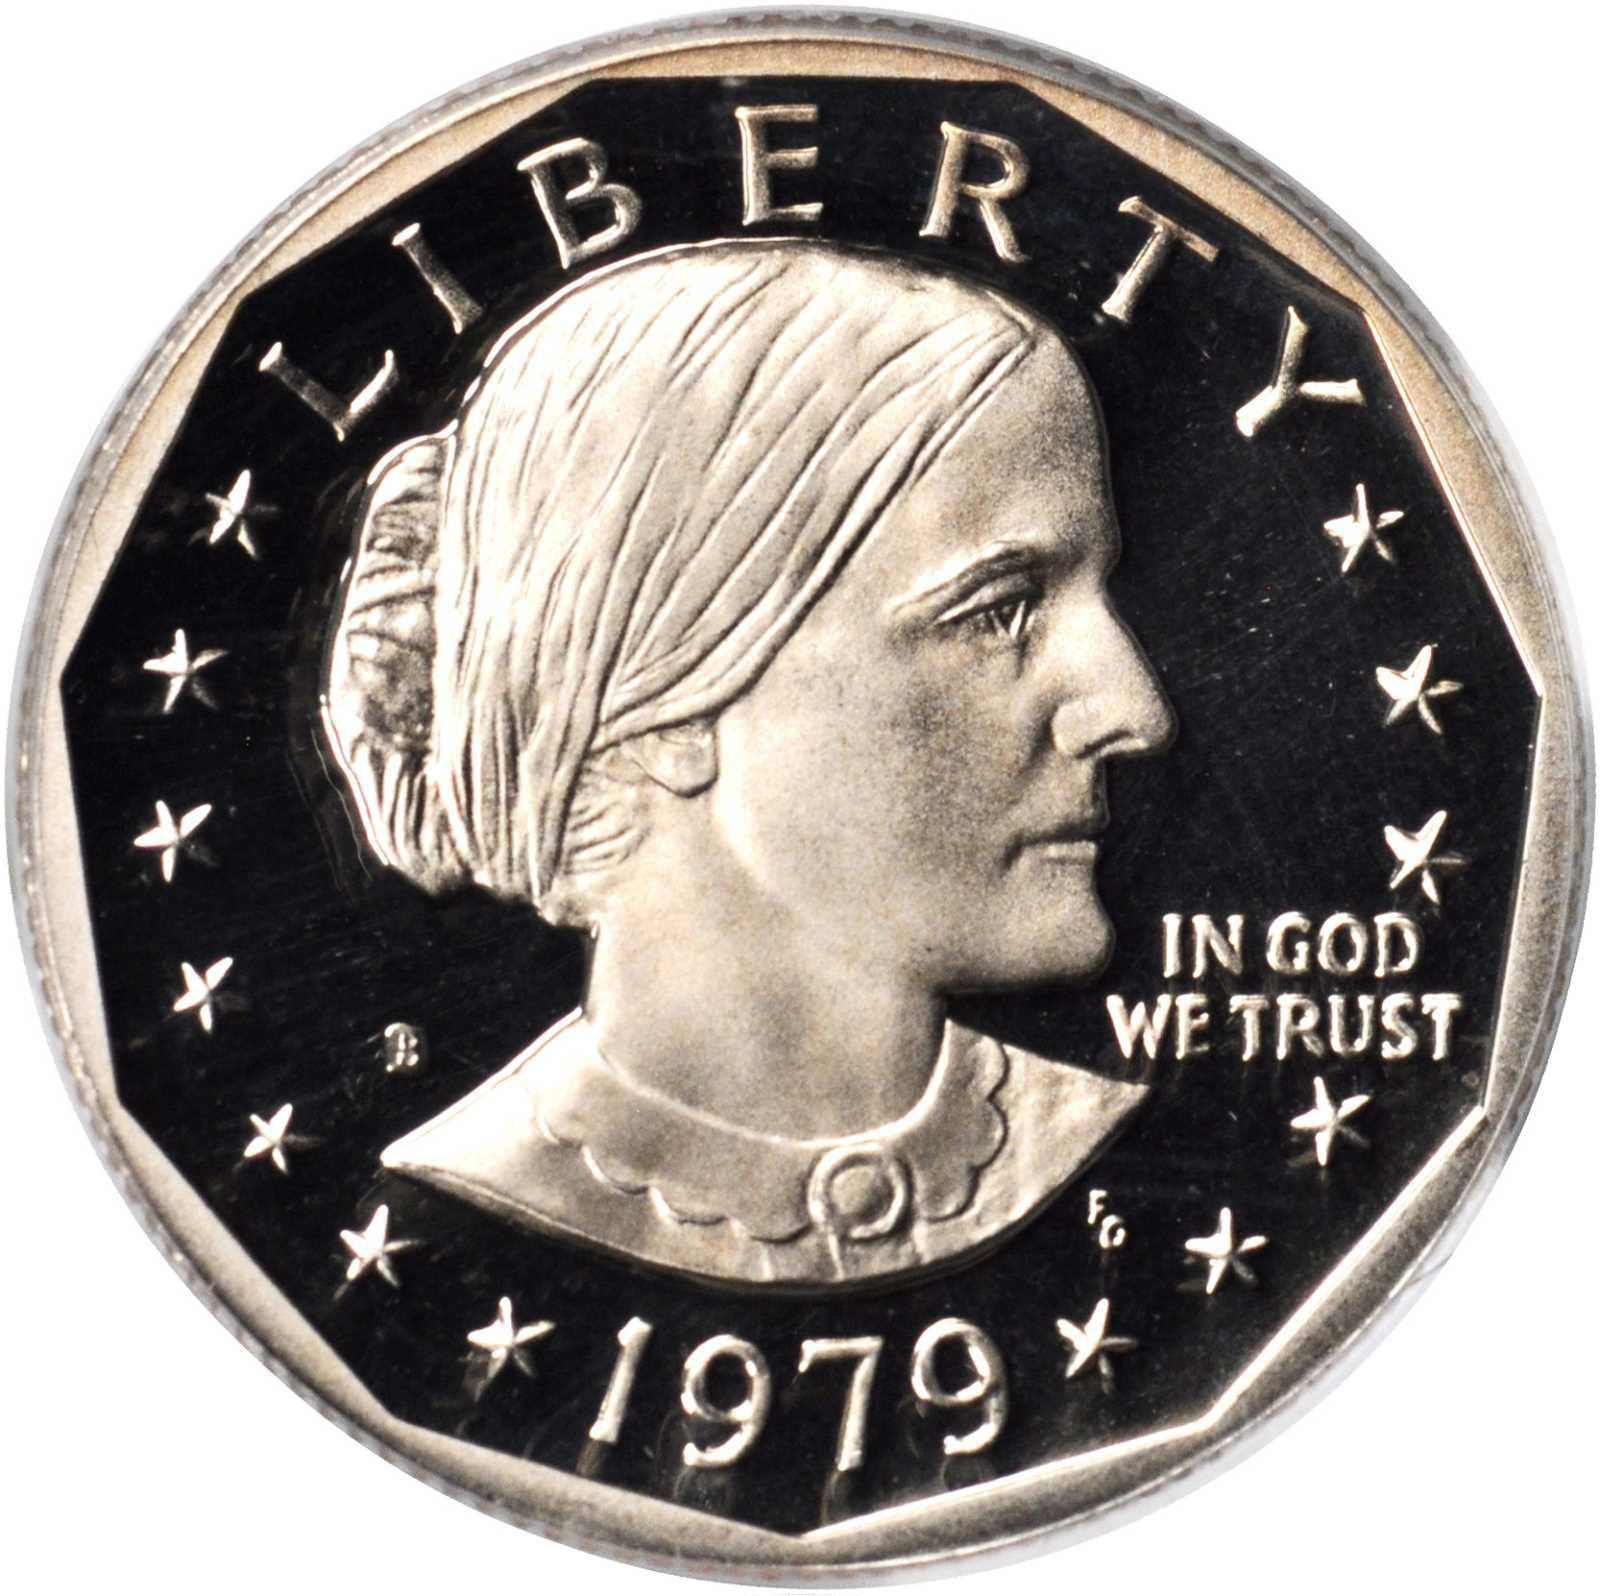 Value Of 1979 D Susan B Anthony Dollar Sell Modern Coins,Grandmother Cartoon